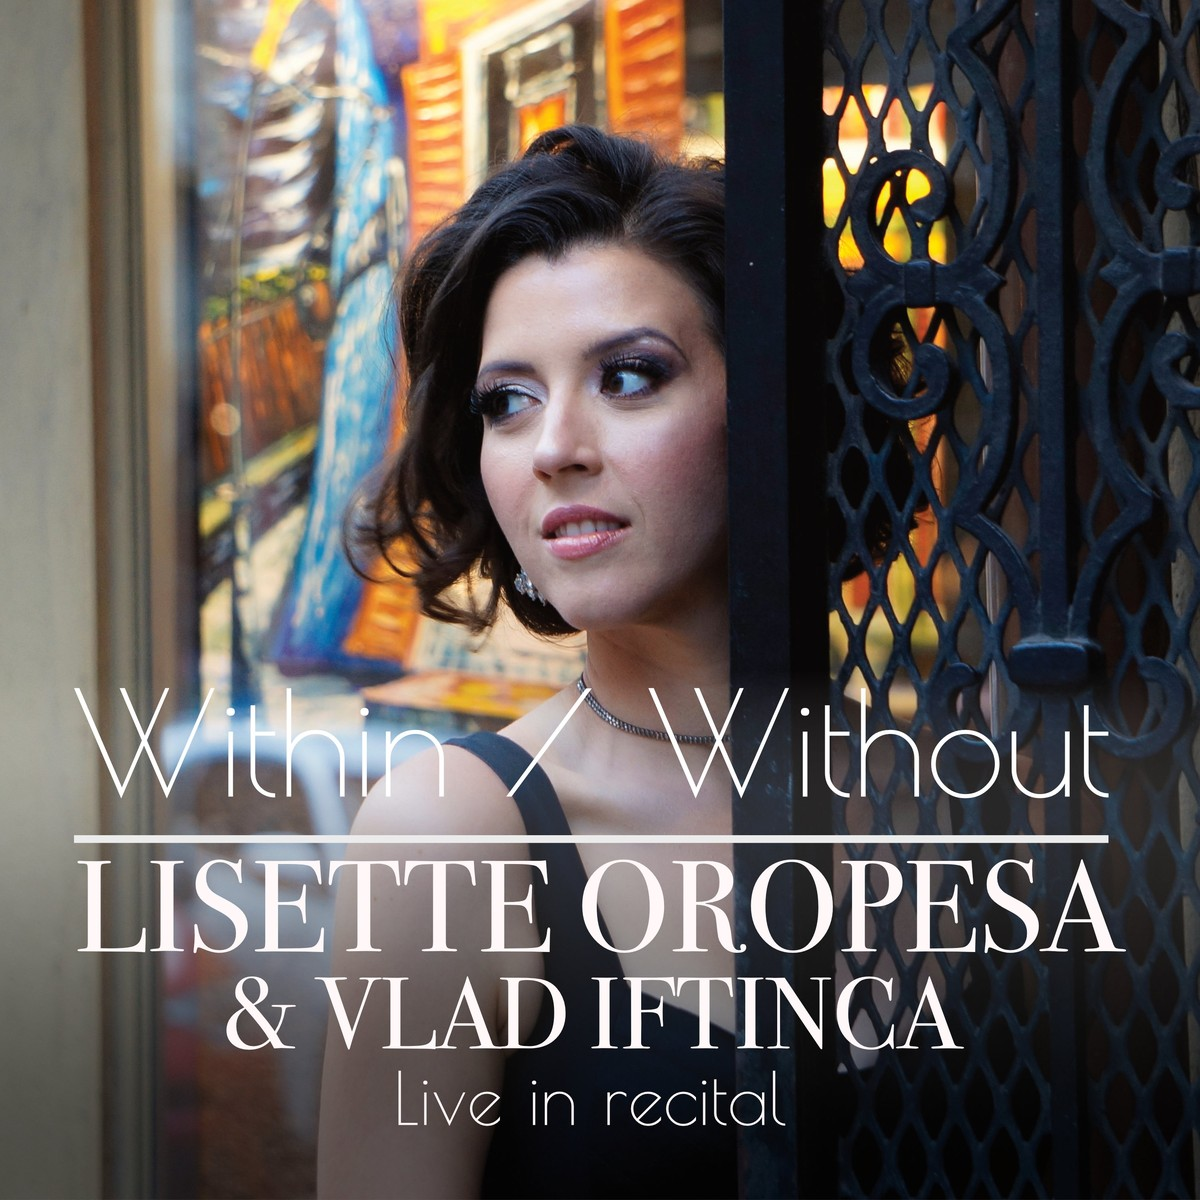 Within / Without, a new album by Lisette Oropesa and Vlad Iftinca